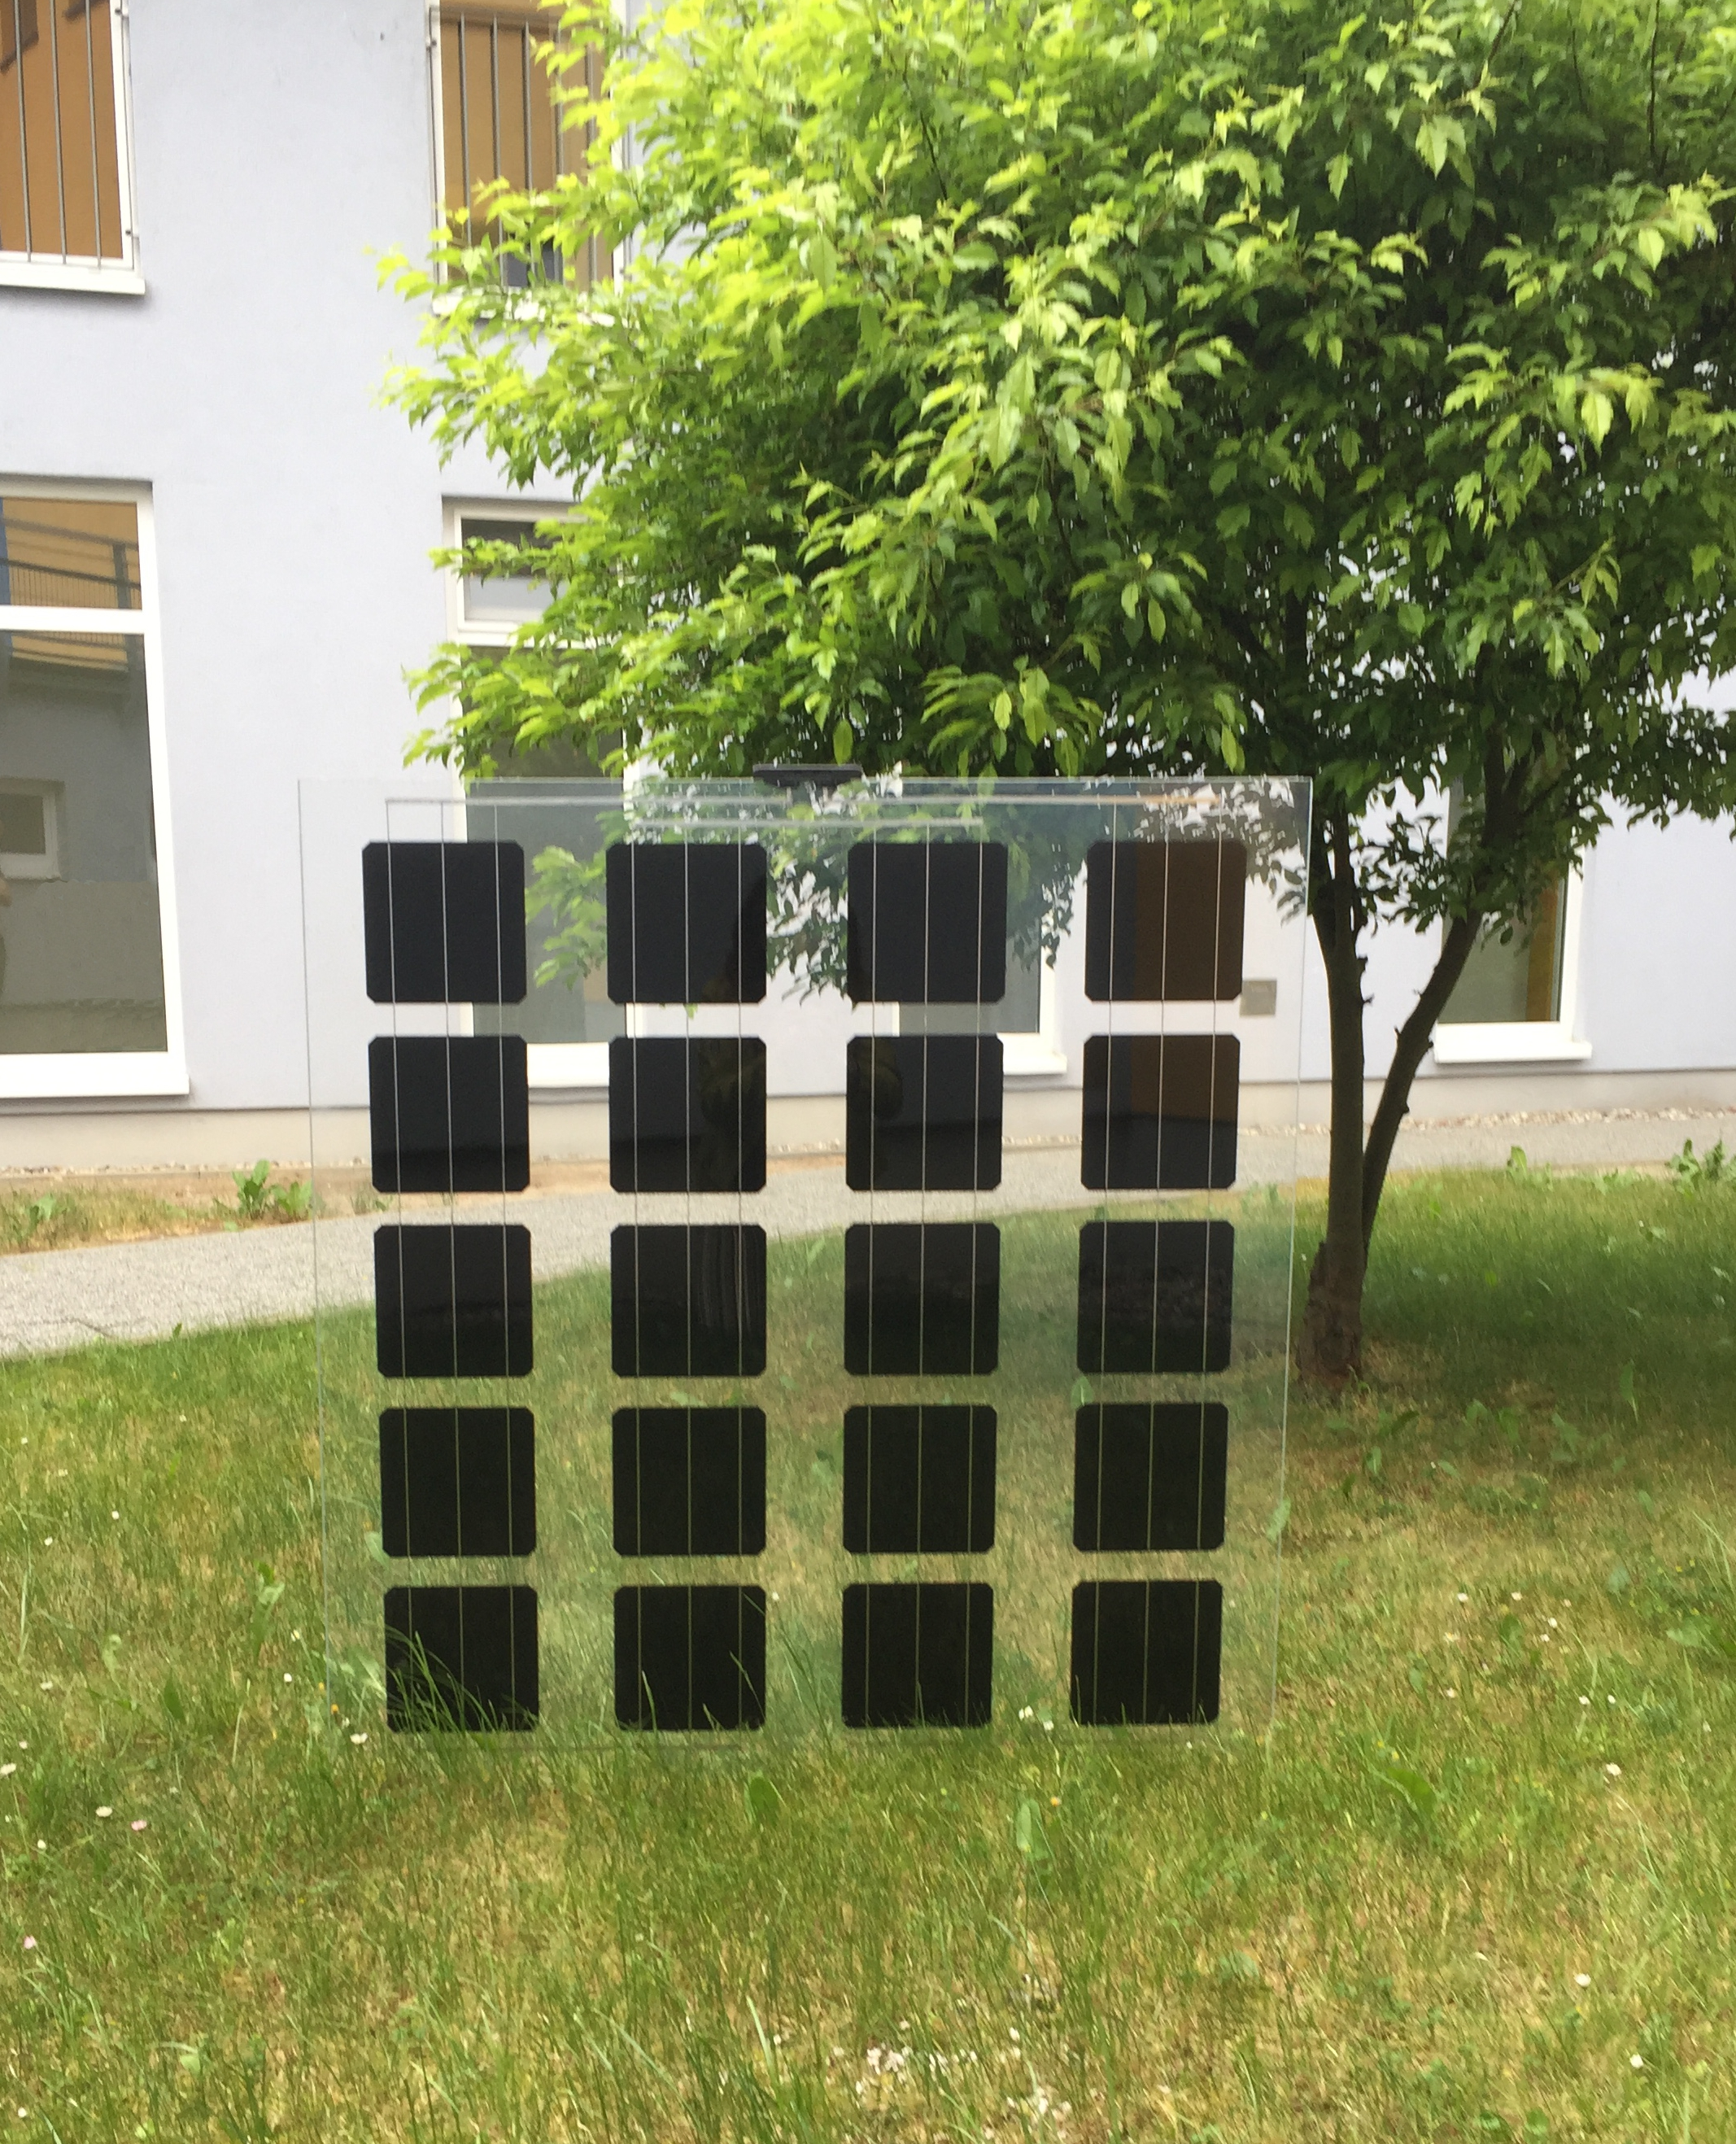 produktgarantie f r he module bis 25 jahre aleo solar pr sentiert neue glas glas module auf. Black Bedroom Furniture Sets. Home Design Ideas